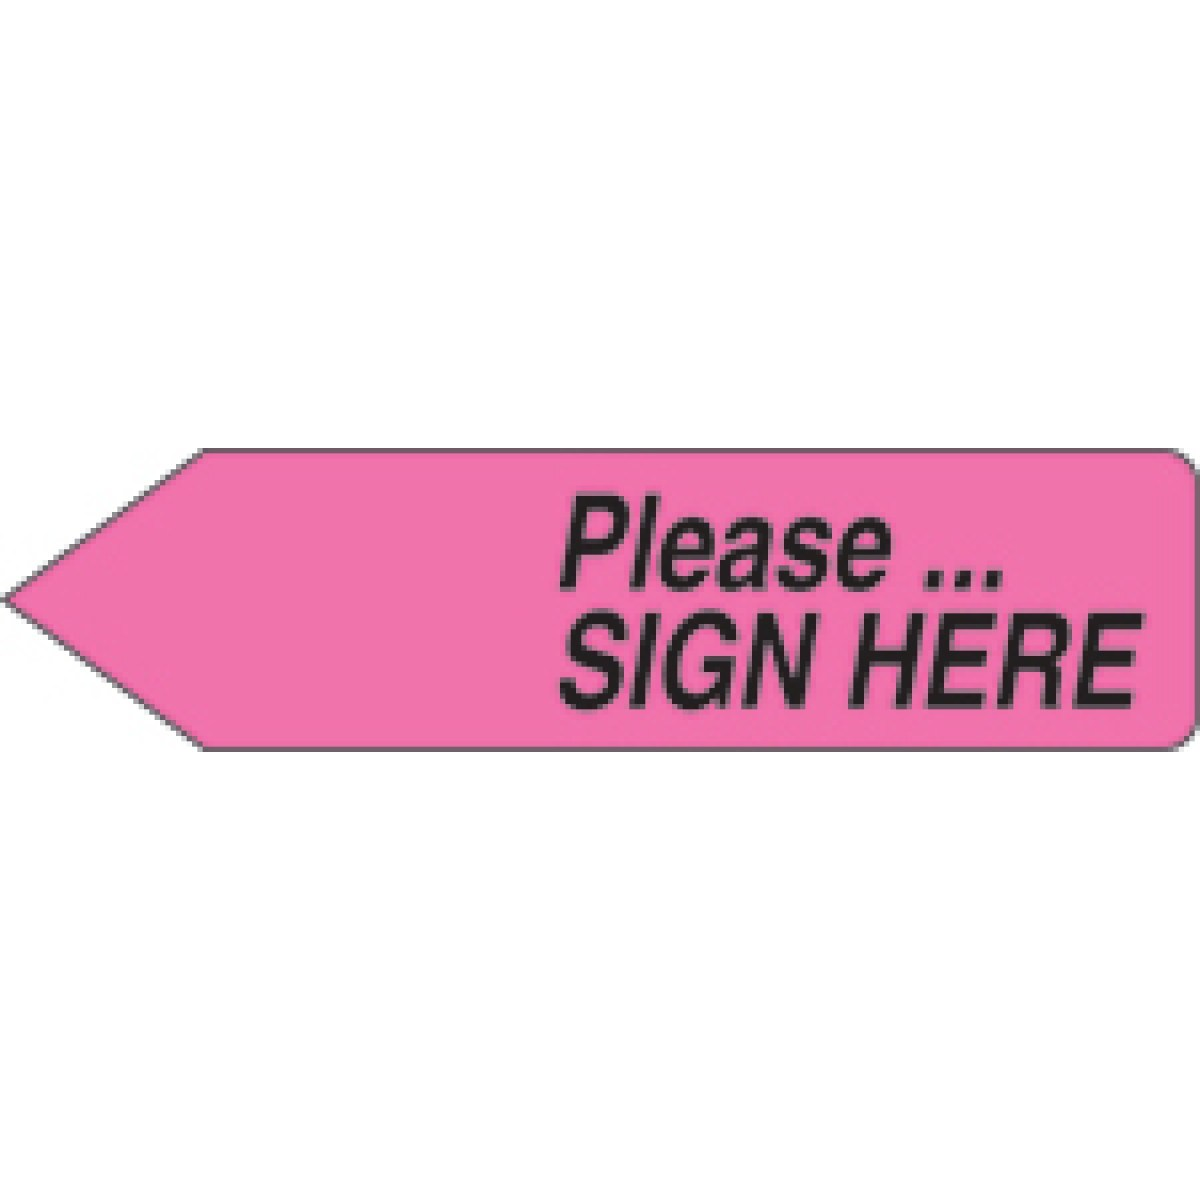 Sign here clipart picture black and white stock Please sign here clipart 4 » Clipart Portal picture black and white stock